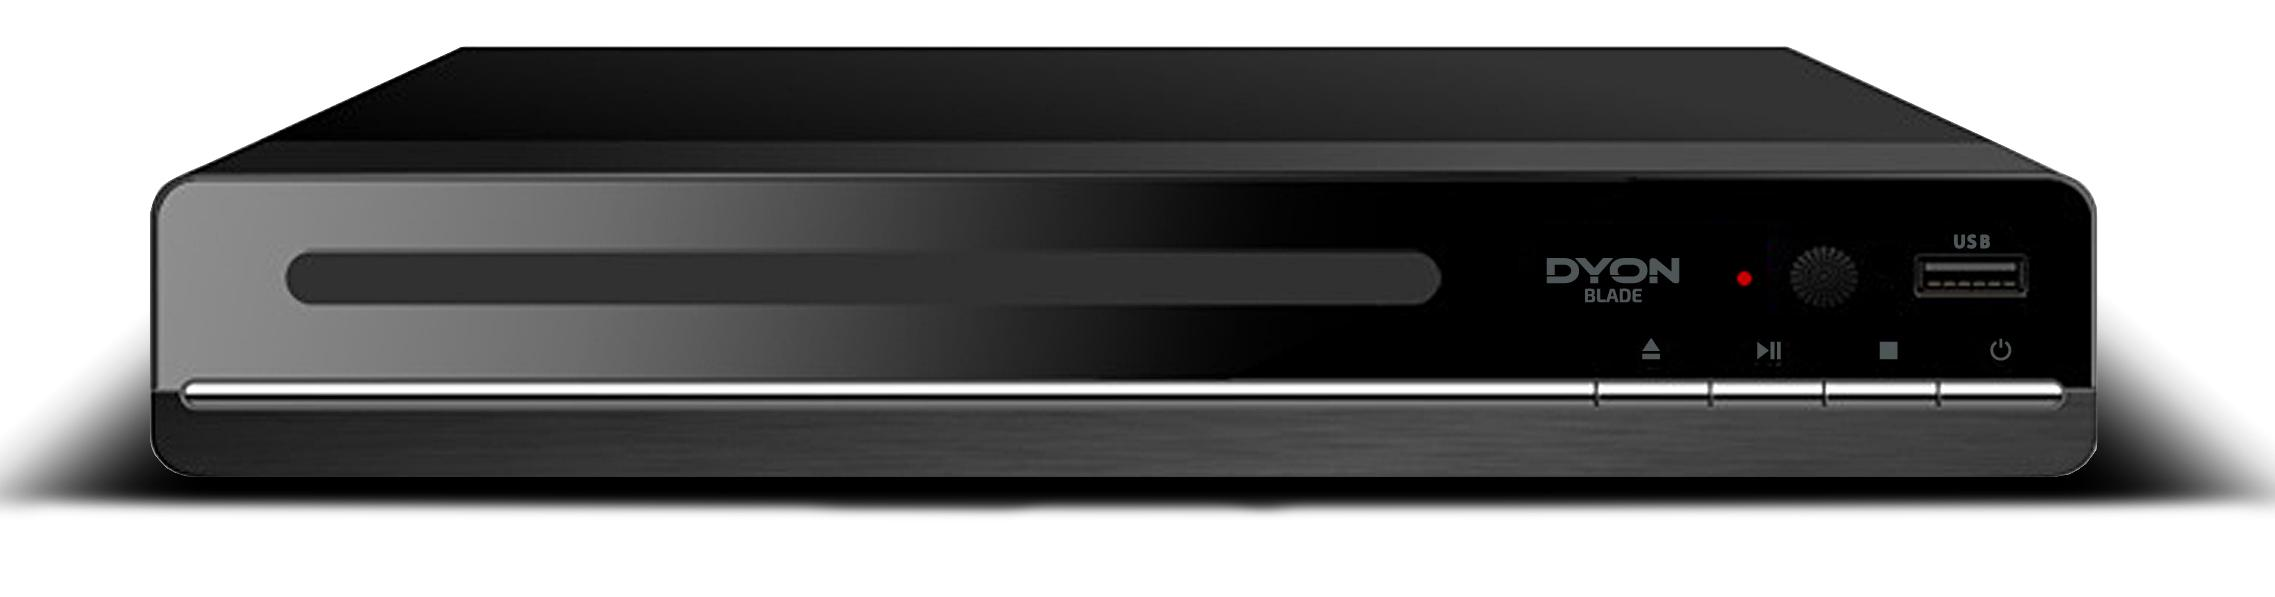 dyon d810014 blade dvd player mit hdmi und usb. Black Bedroom Furniture Sets. Home Design Ideas